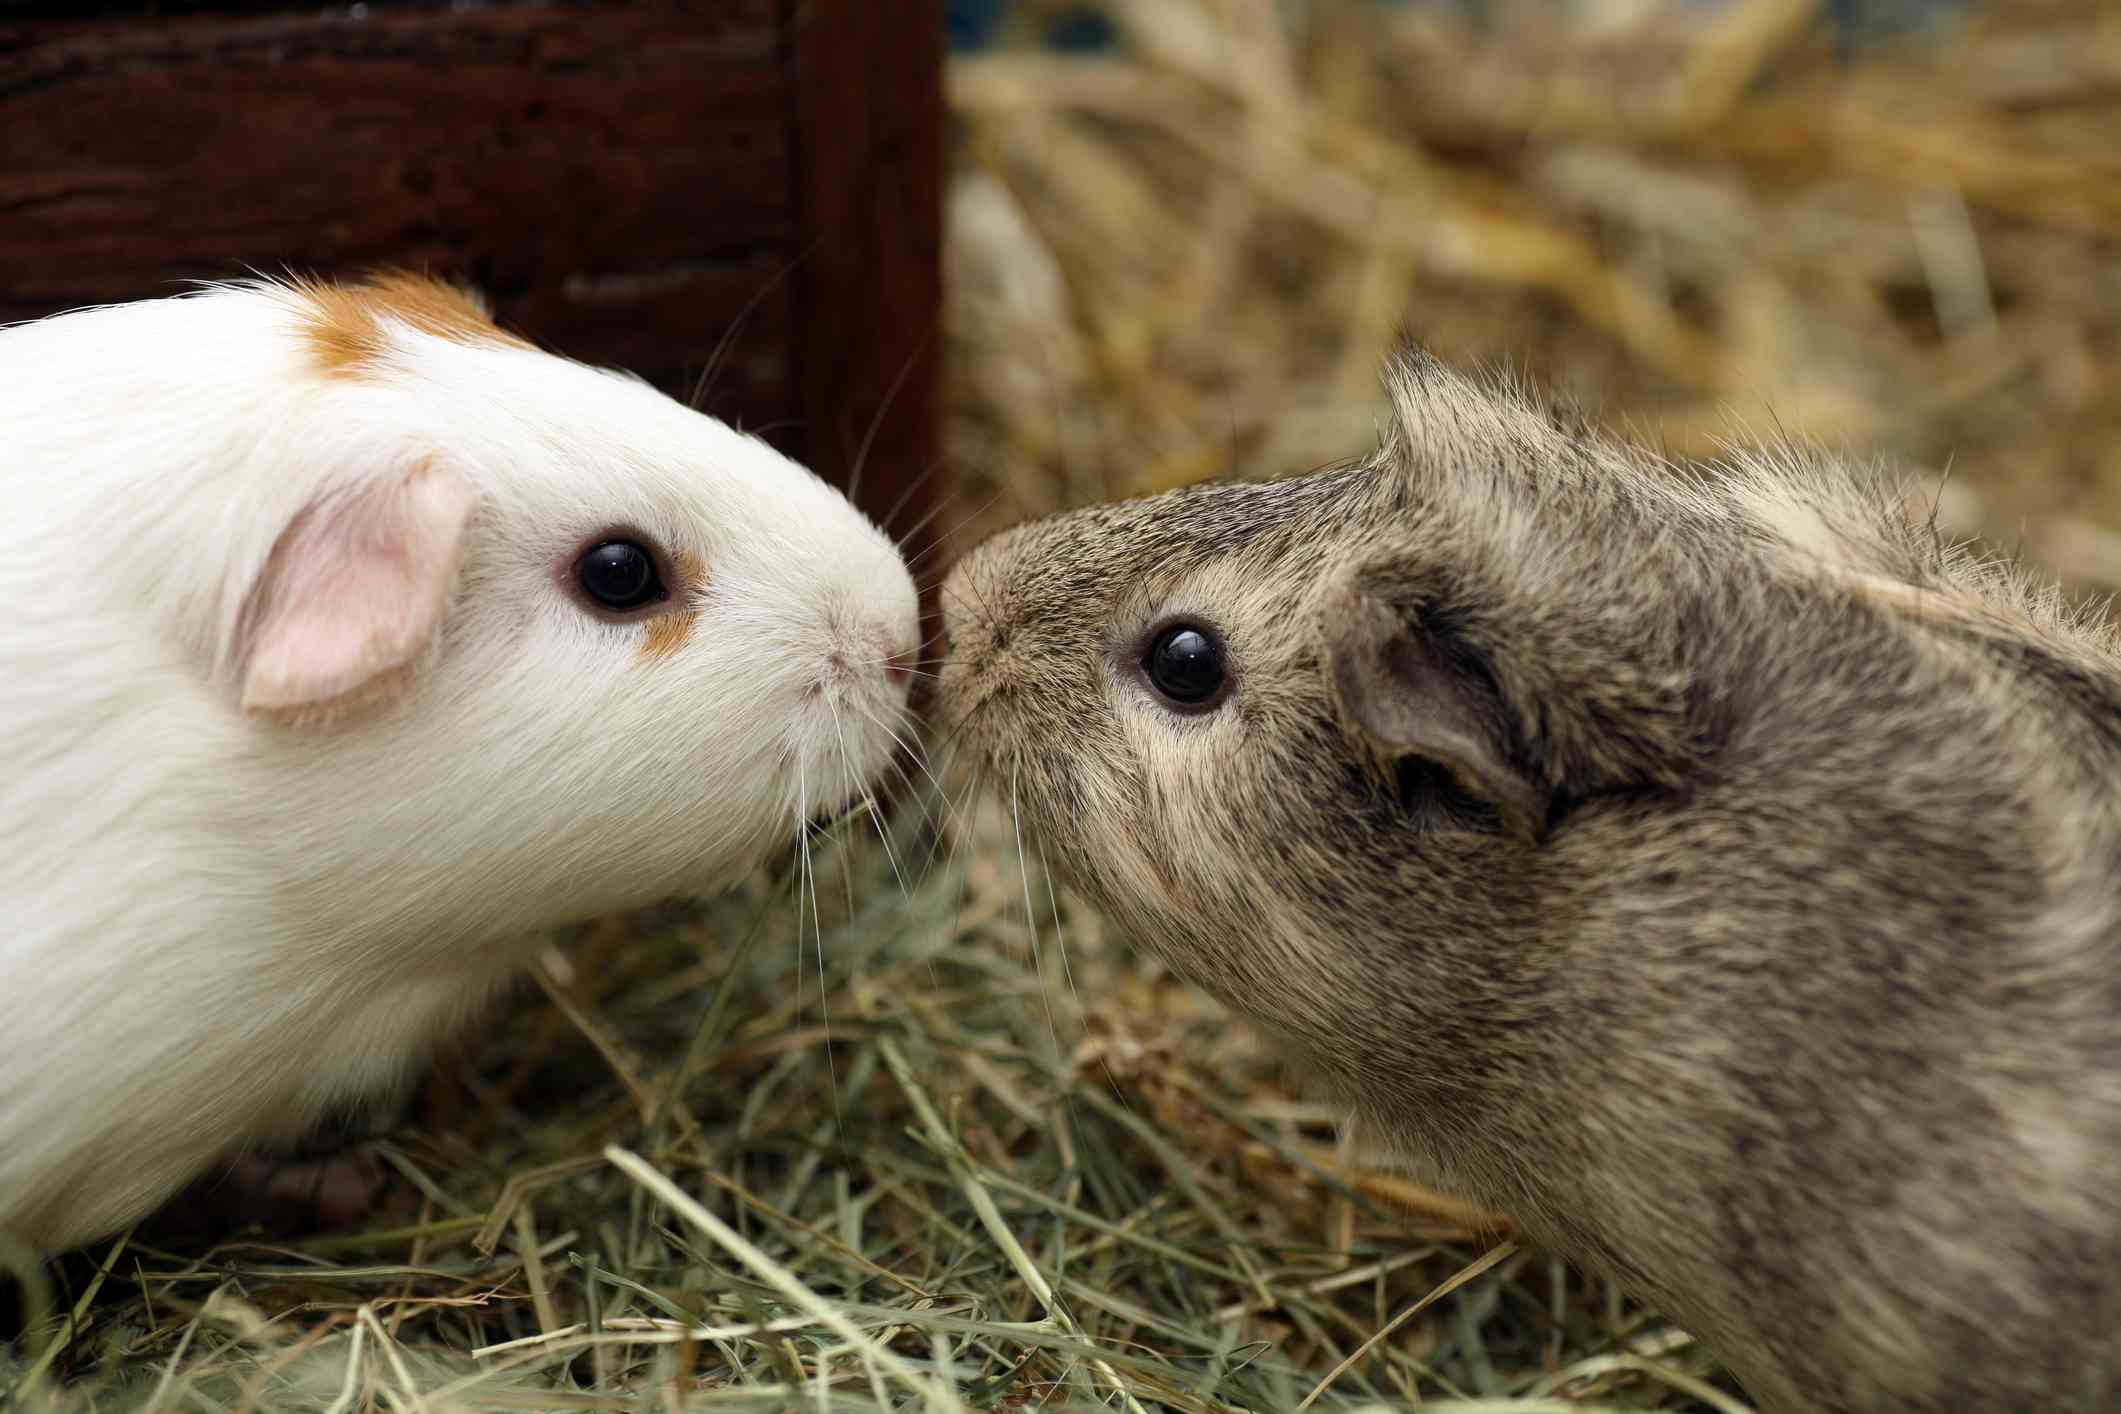 Guinea pigs touching noses